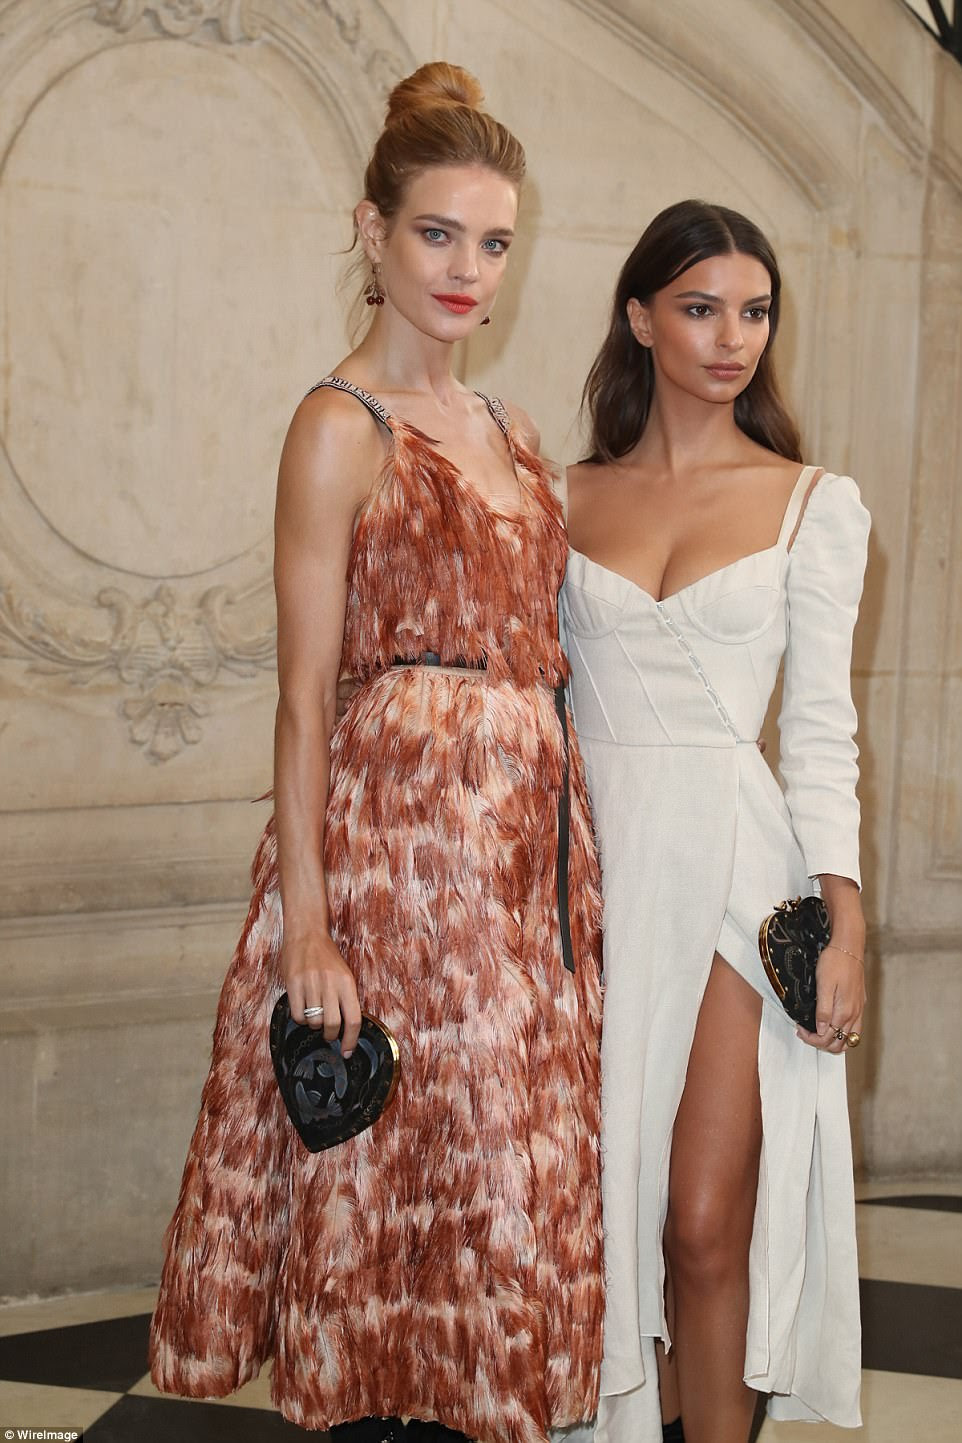 Chic,The star, who burst onto the scene when she appeared nude in Robin Thicke's Blurred Lines music video in 2013, smouldered as she posed alongside fellow model, Russian beauty Natalia Vodianova